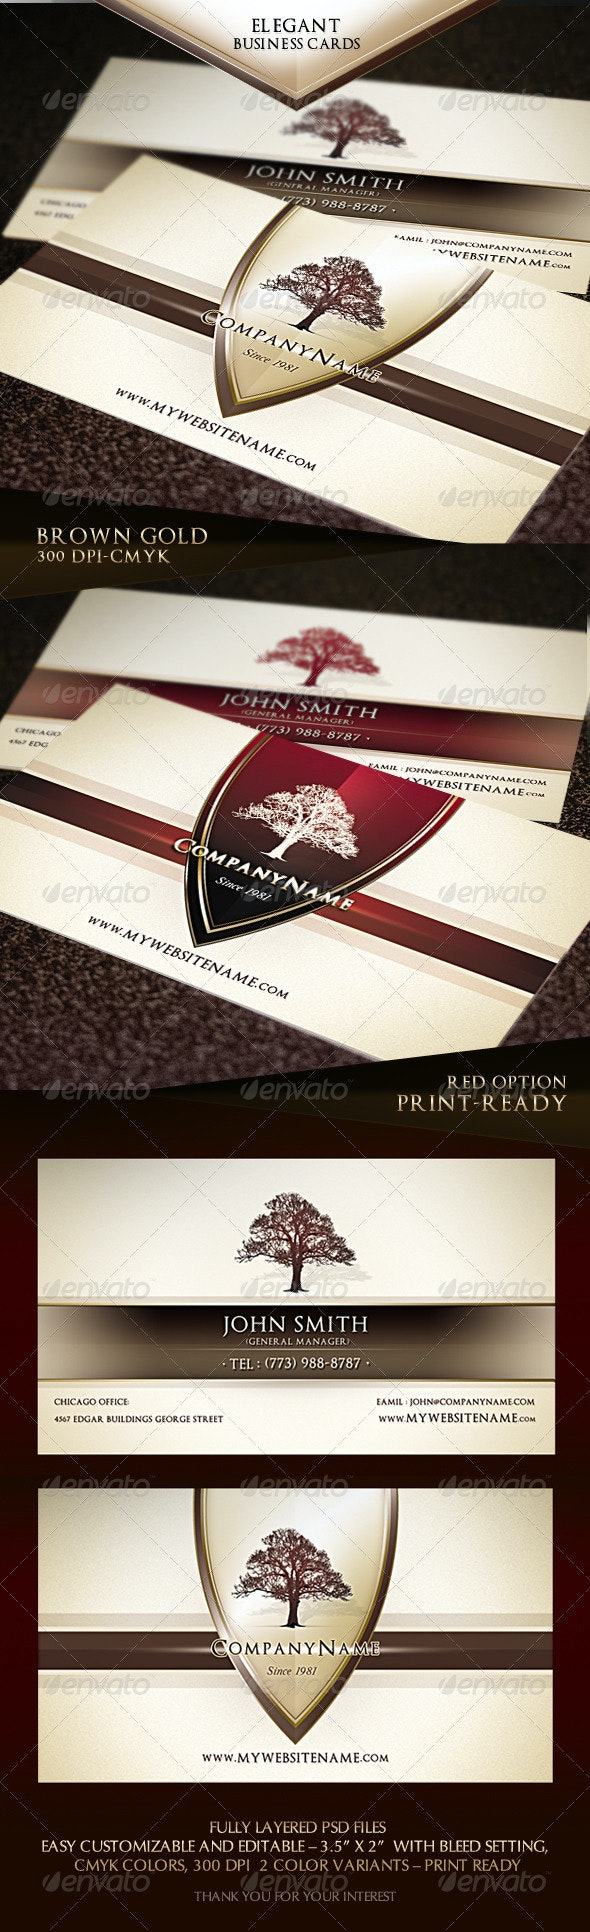 Elegant Business Cards - Creative Business Cards